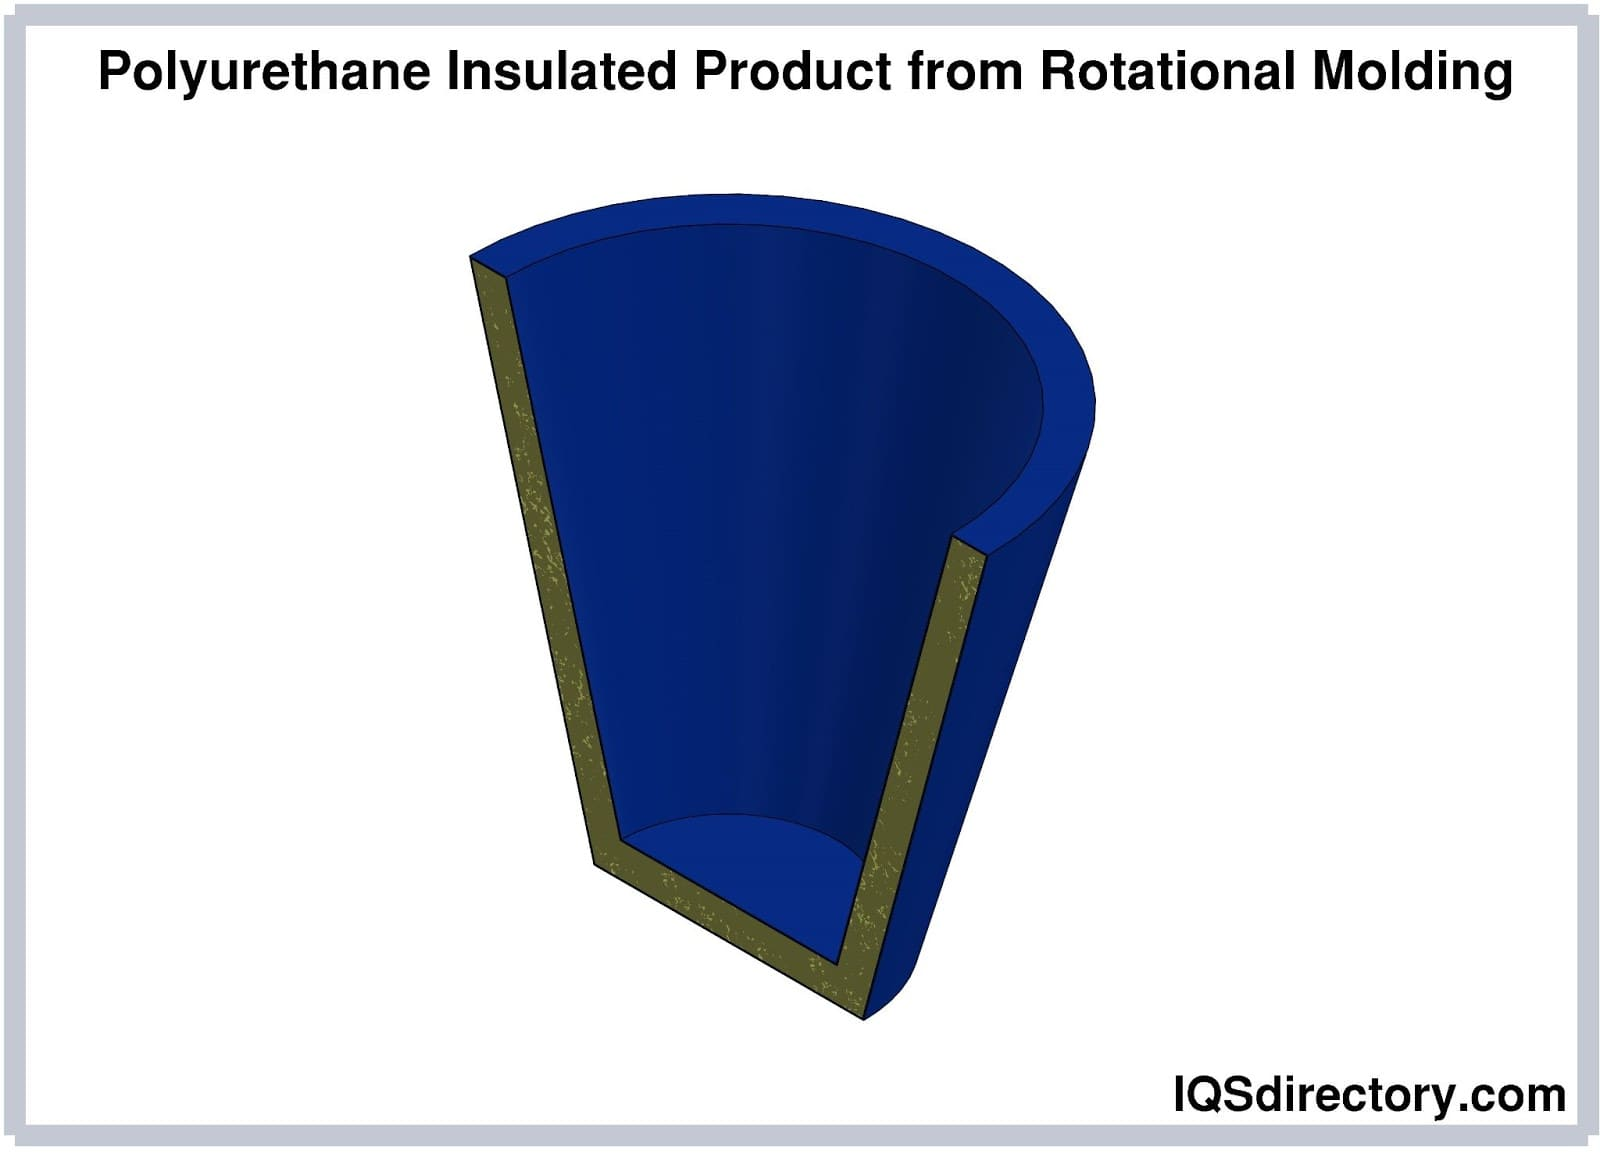 Polyurethane Insulated Product from Rotational Molding